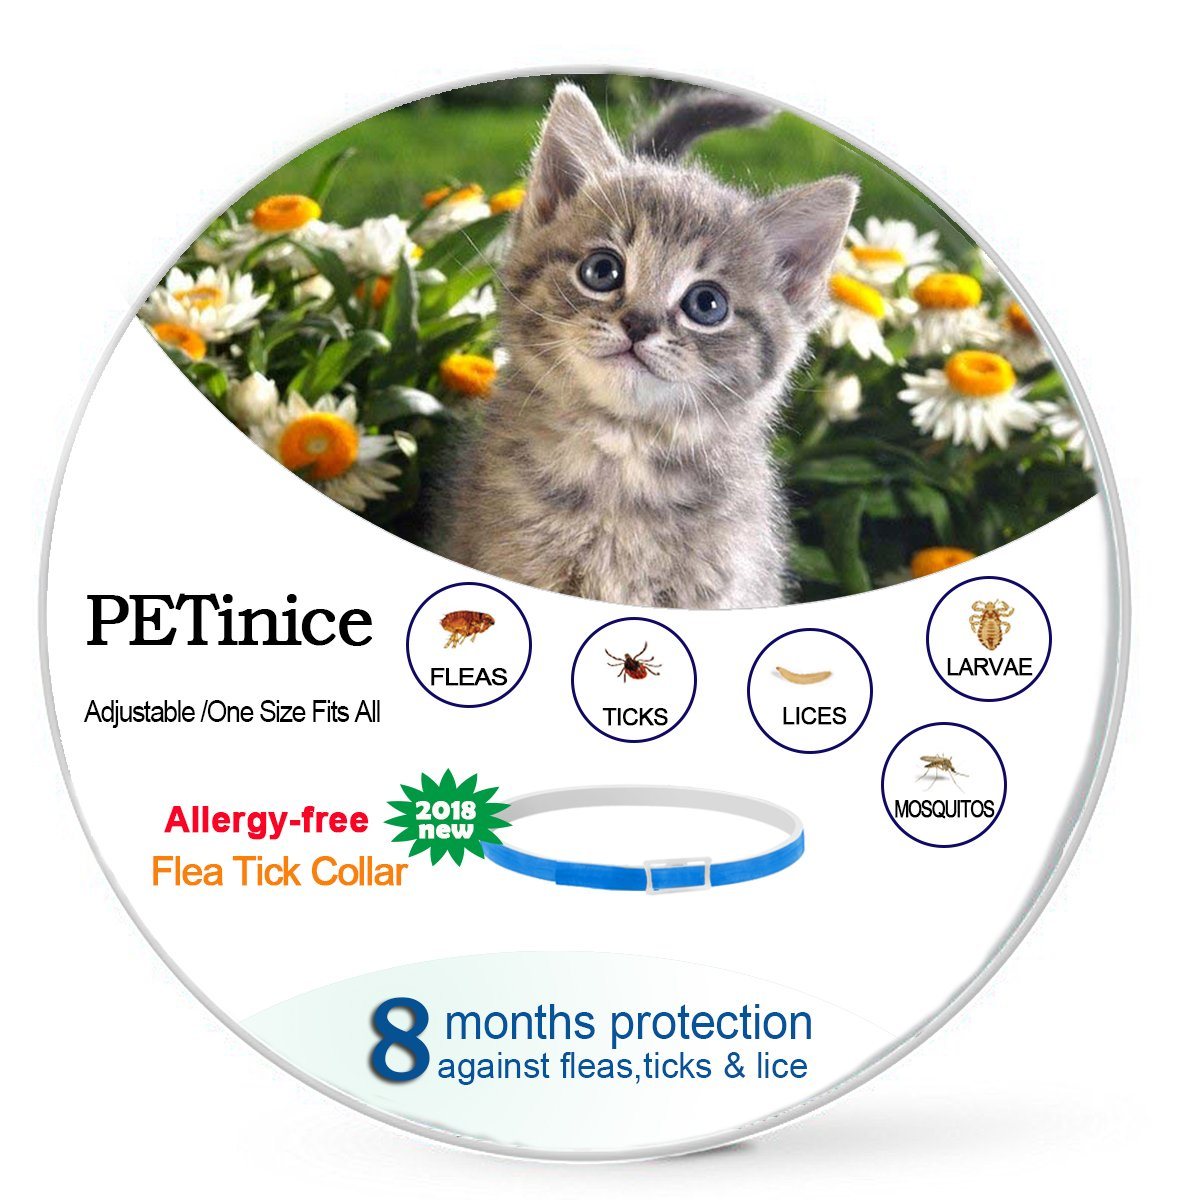 Flea and Tick Prevention for Cats ,Flea Control for Cats-Prevents,Repels Fleas,Ticks & Lice Waterproof and Adjustable Cat Flea and Tick Control for 8 Month Protection(New Version)